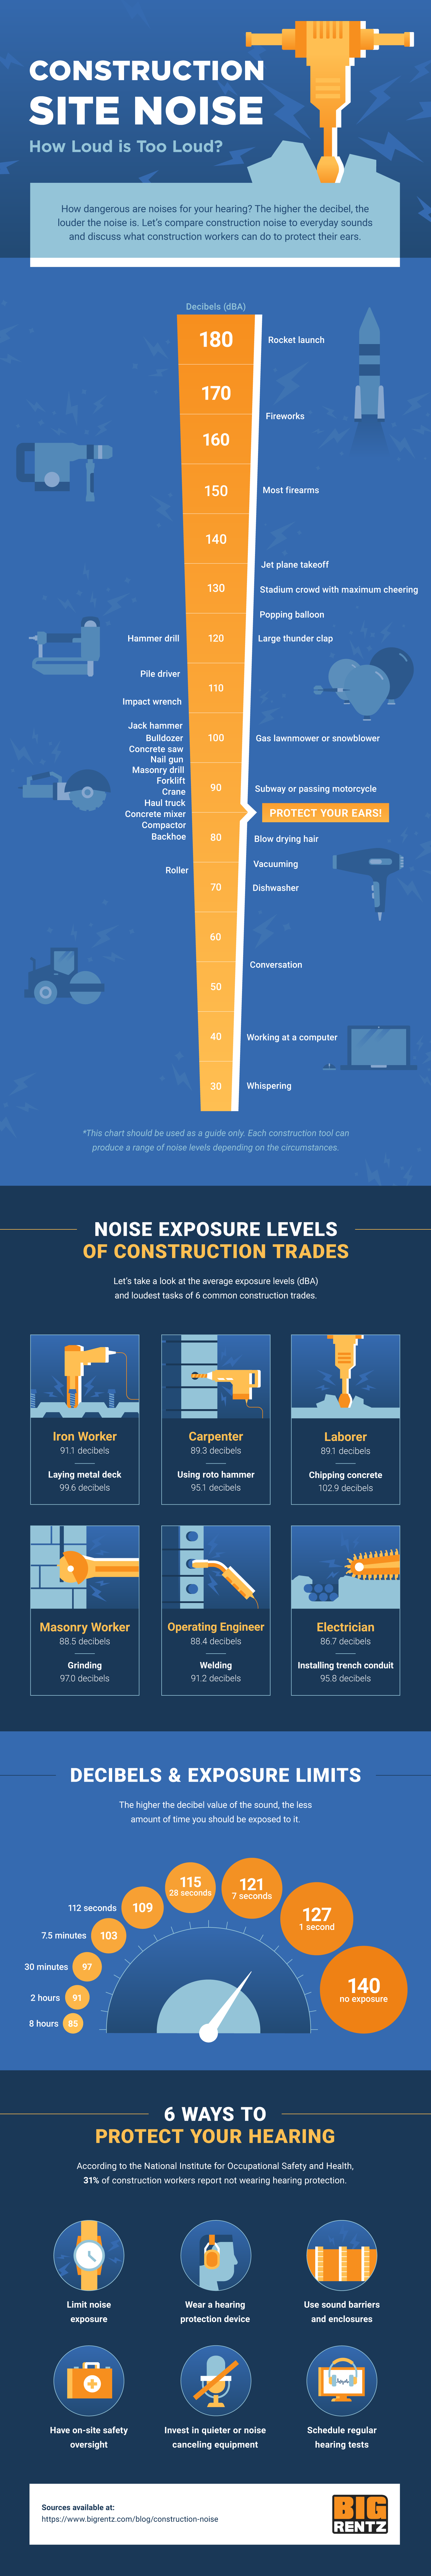 Infographic describing how construction noise levels compare to other sounds, their exposure limits, and tips to protect your hearing.